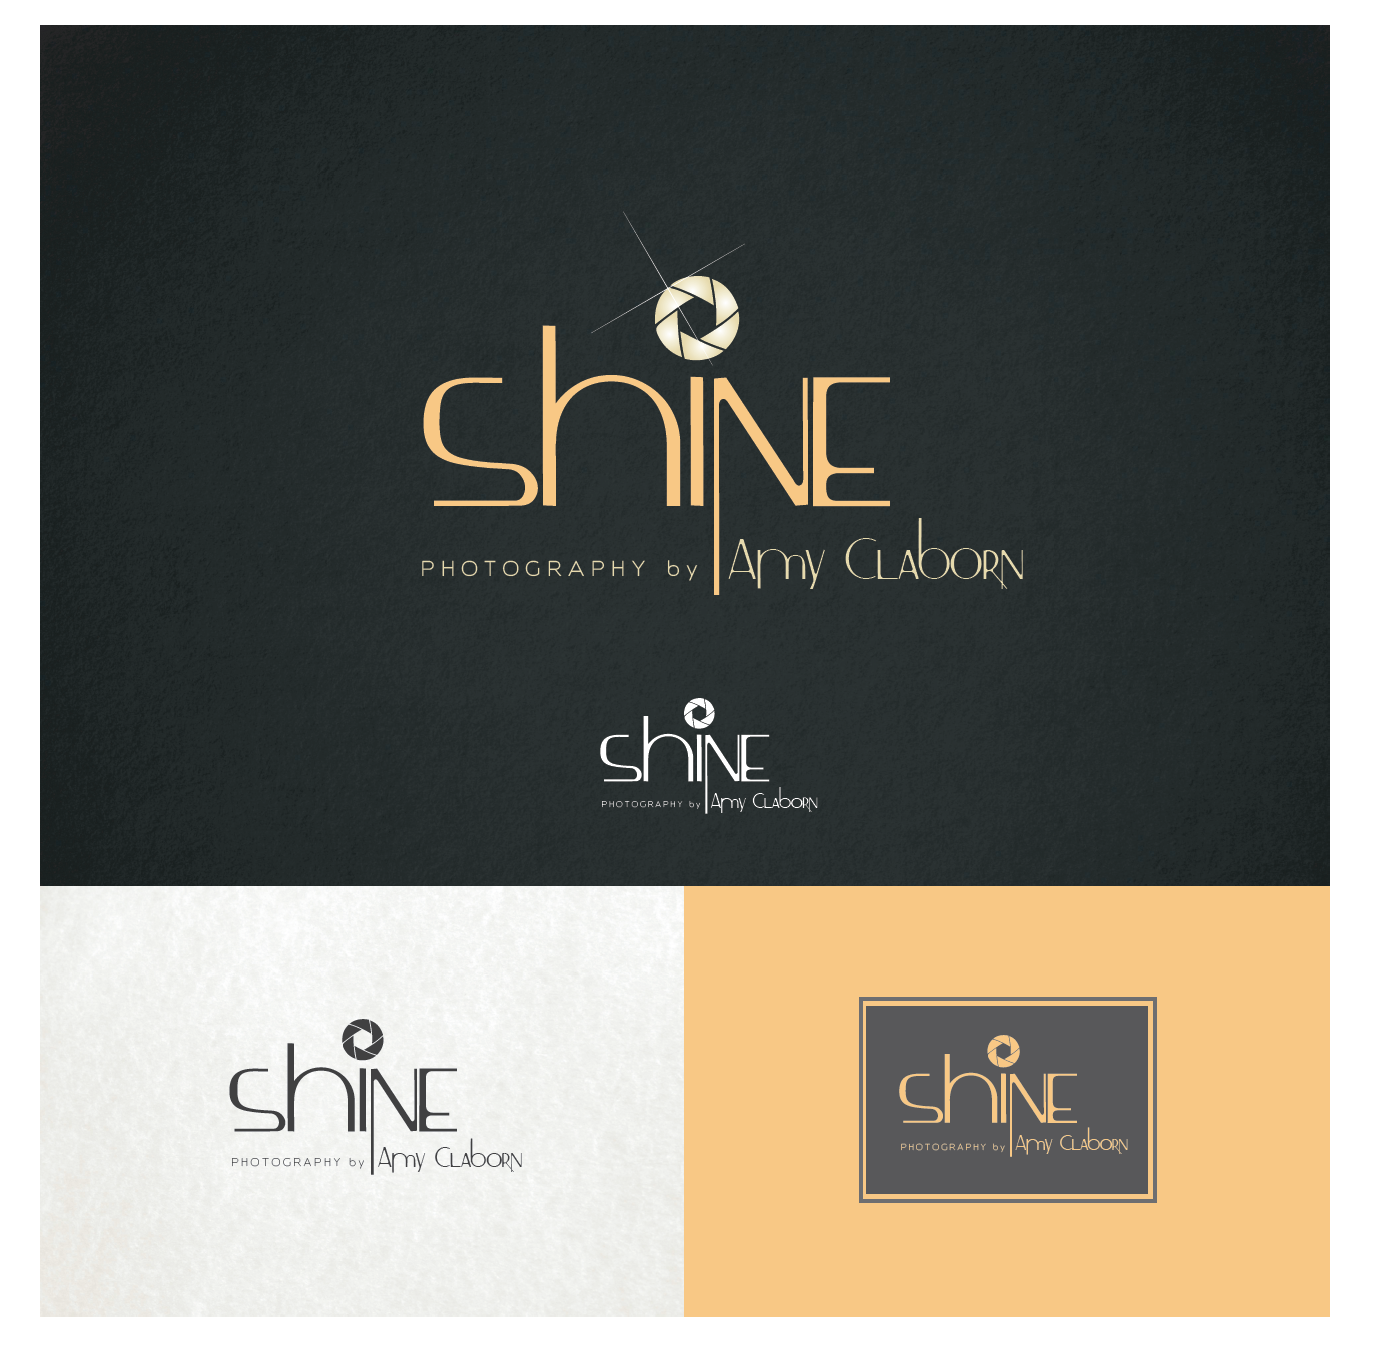 Create a modern, sophisticated look for Shine Photography by Amy Claborn